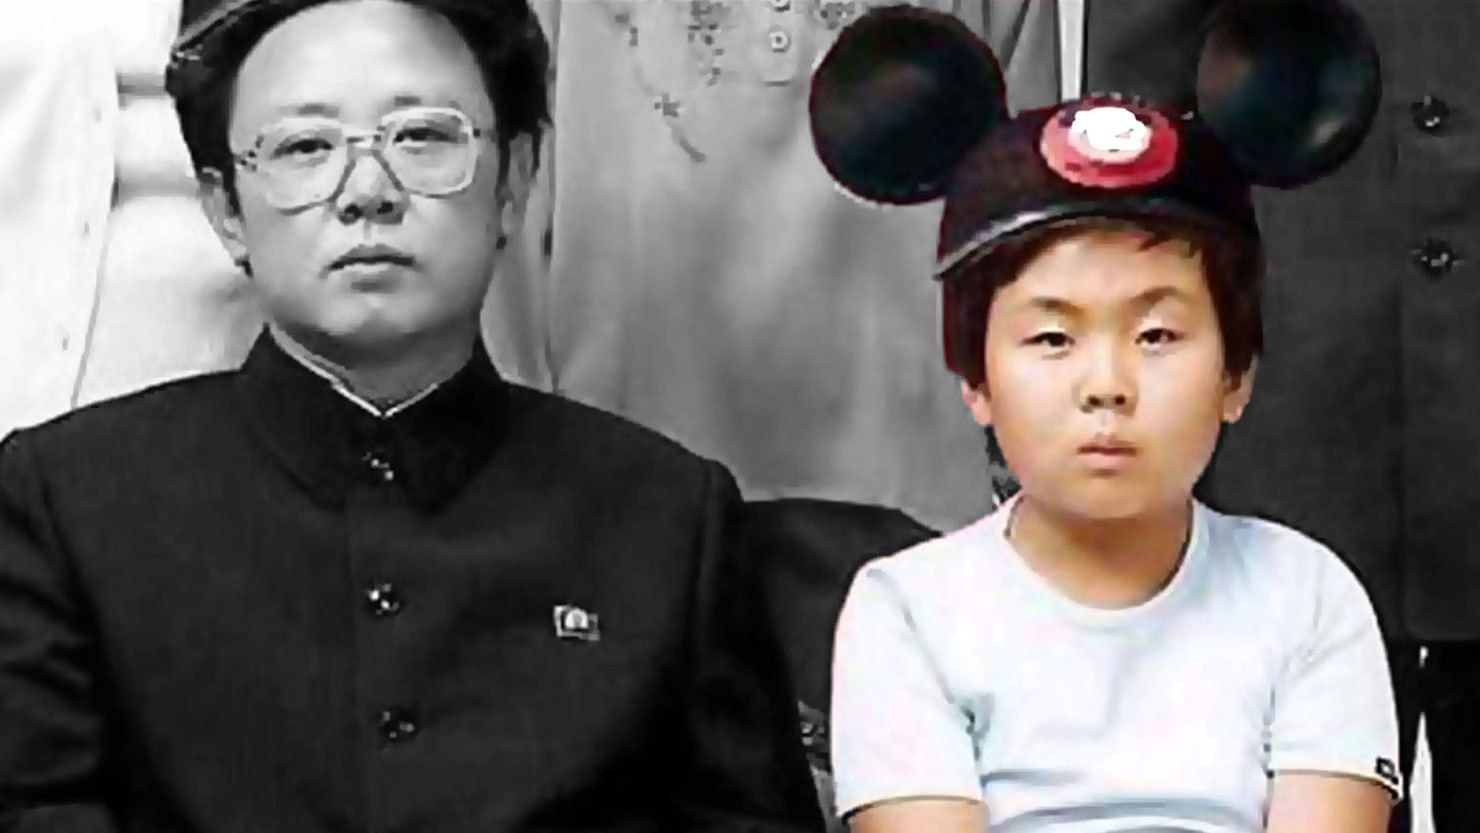 From Chubby Basketball Fan to Fratricidal Maniac: How Swiss Boarding School Shaped Kim Jong Un